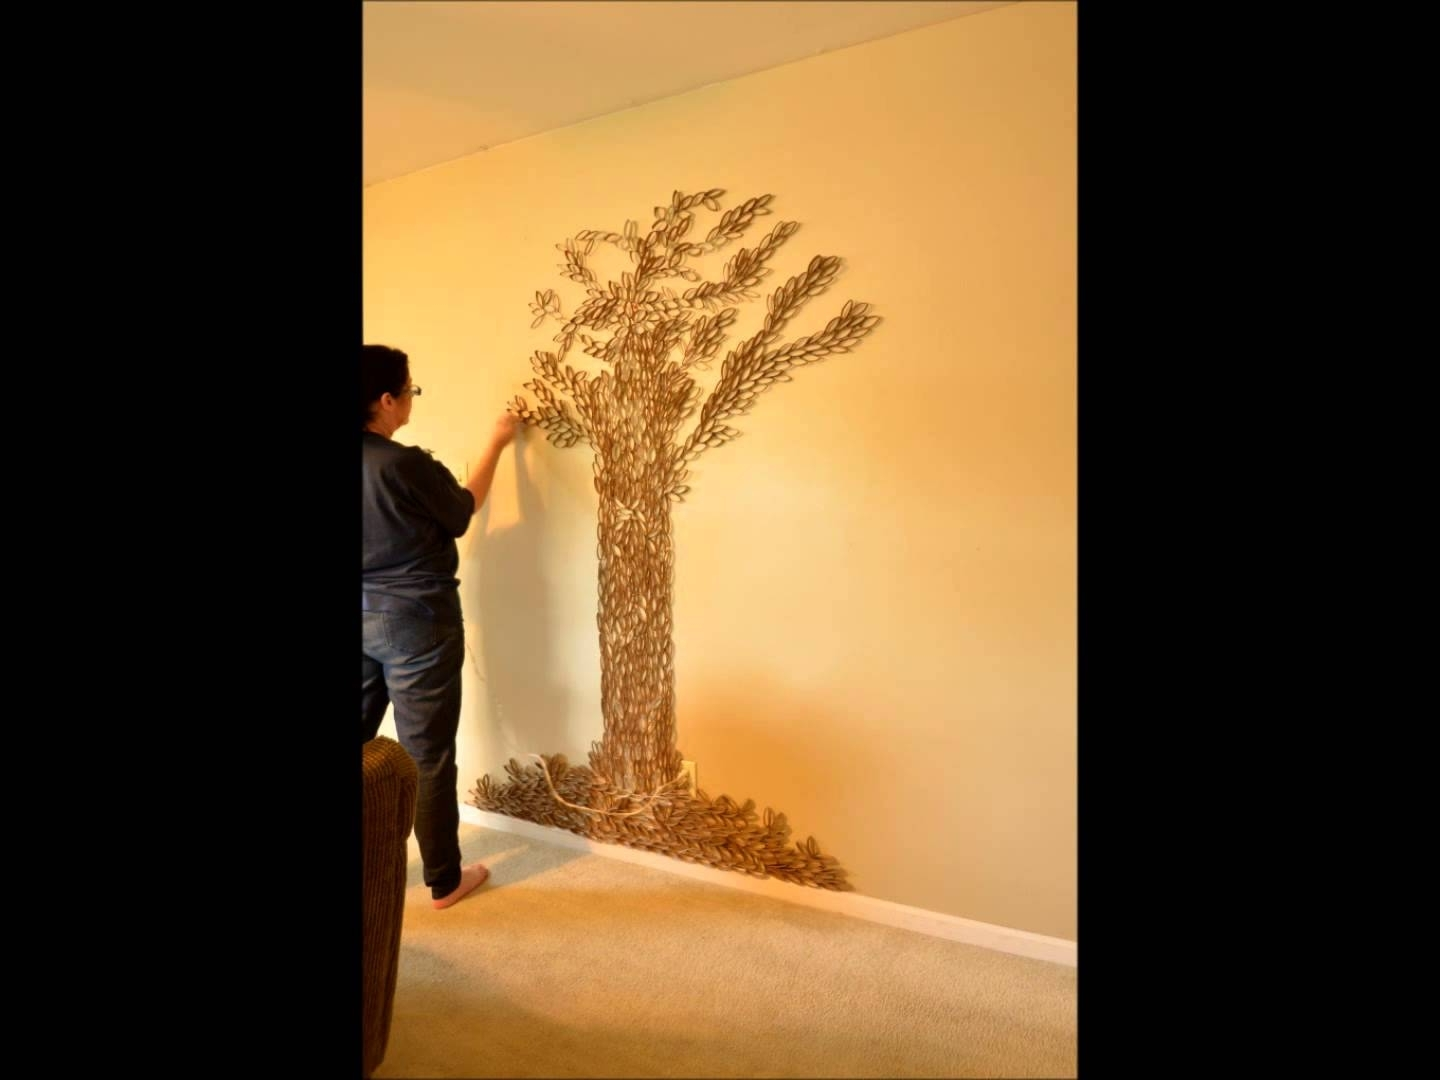 Favorite Tree Sculpture Wall Art Pertaining To Tree Of Life Wall Art – 7Ft Paper Roll Sculpture In 1 Minute (View 7 of 15)